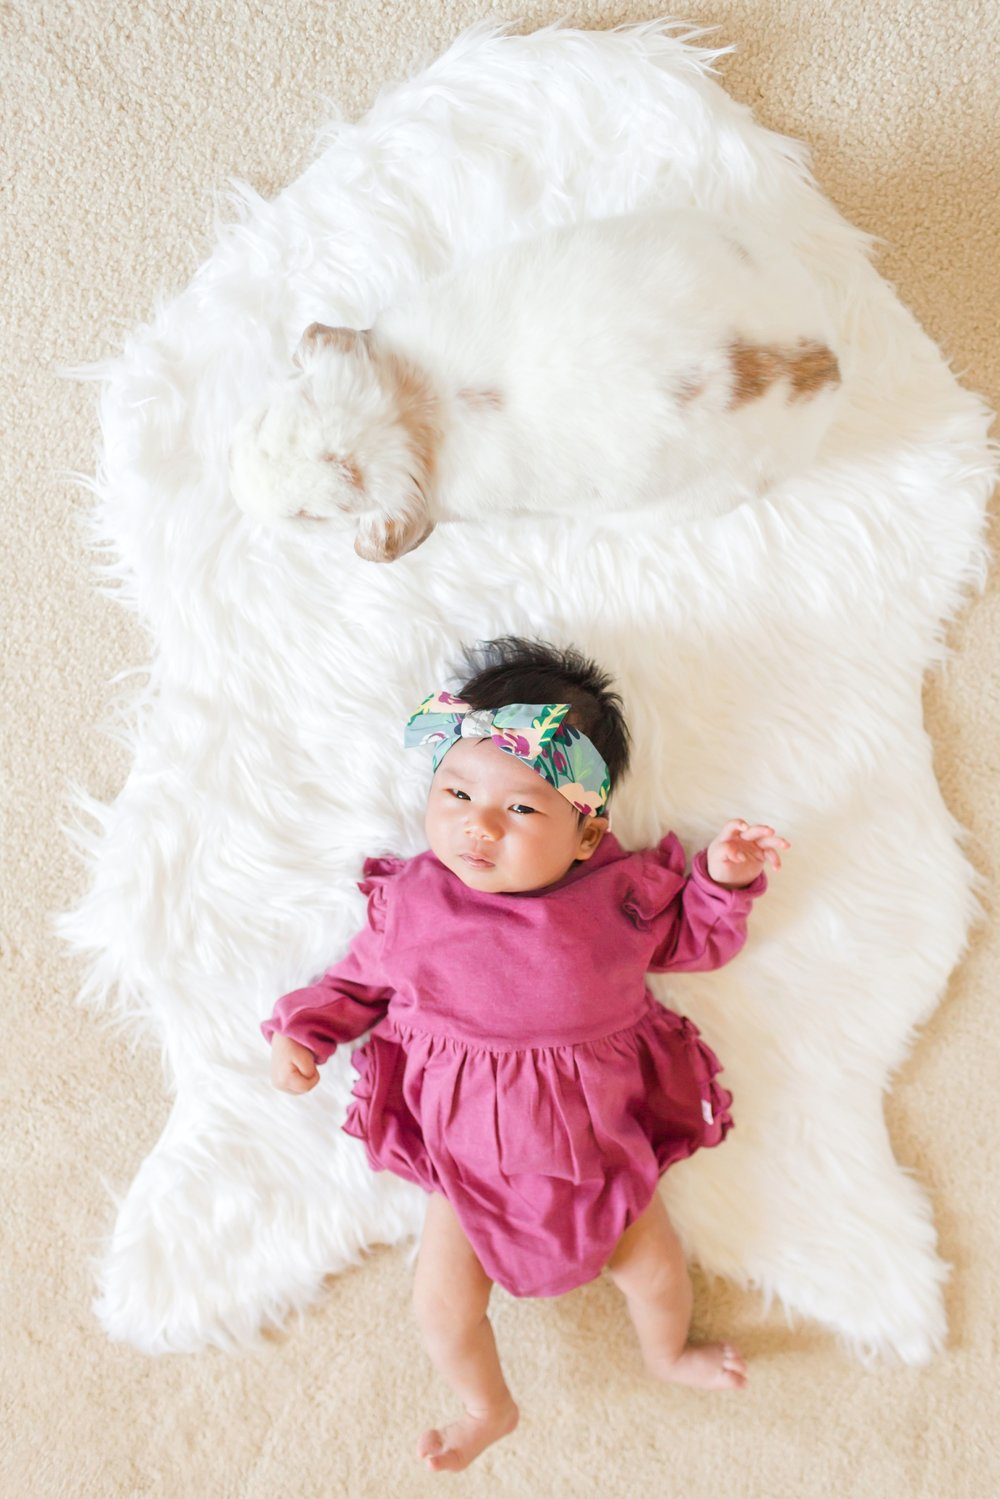 See more from   baby Chloe's newborn session here  !